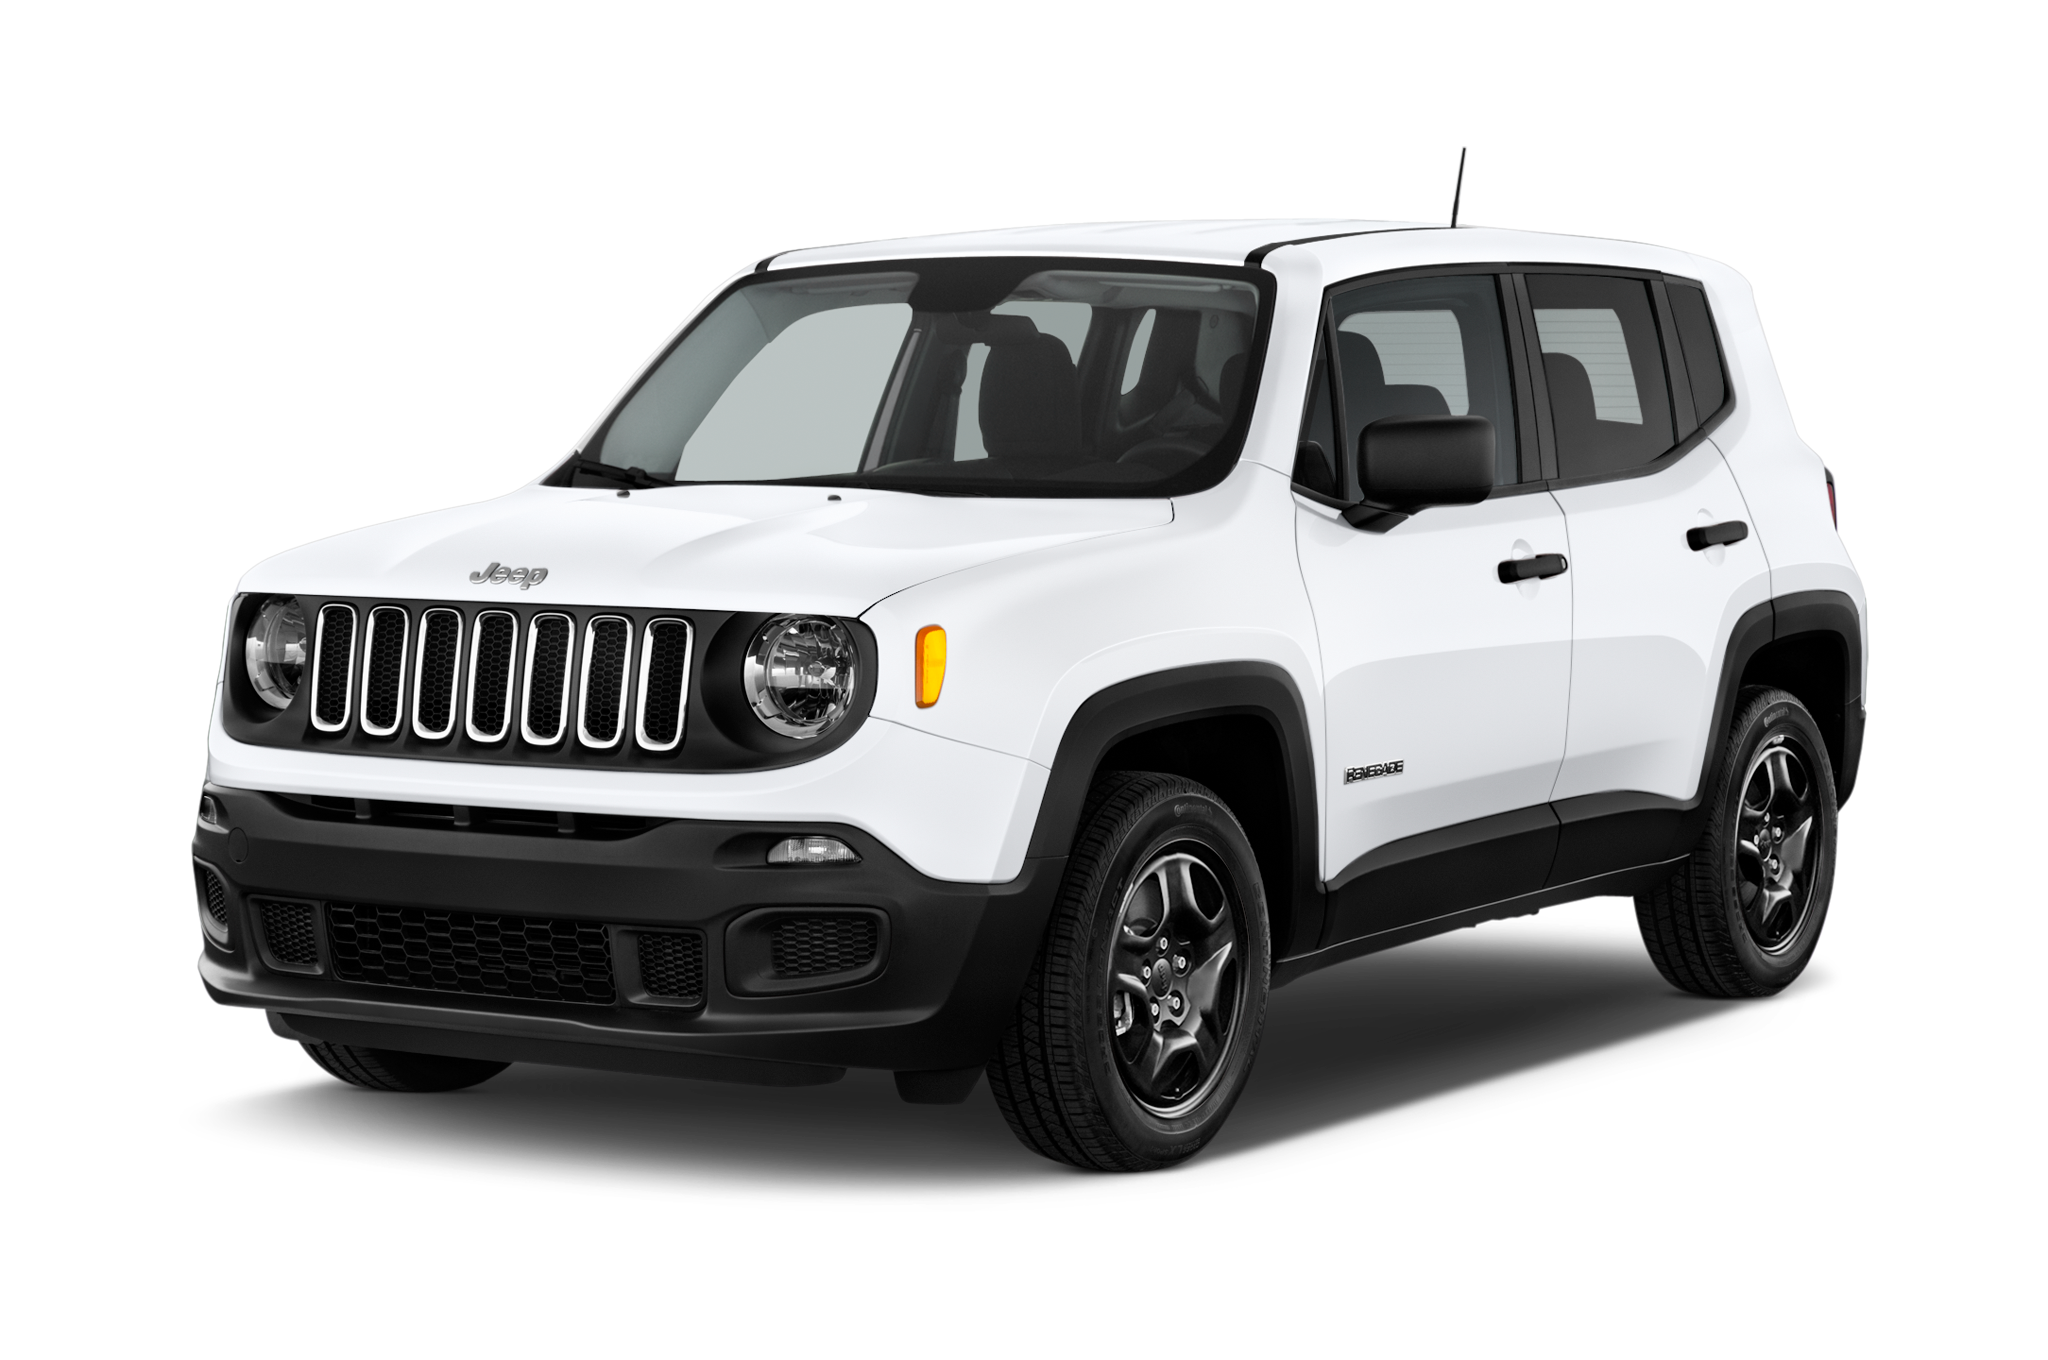 Jeep Renegade Hell S Revenge Is Inspired By Harley Davidson